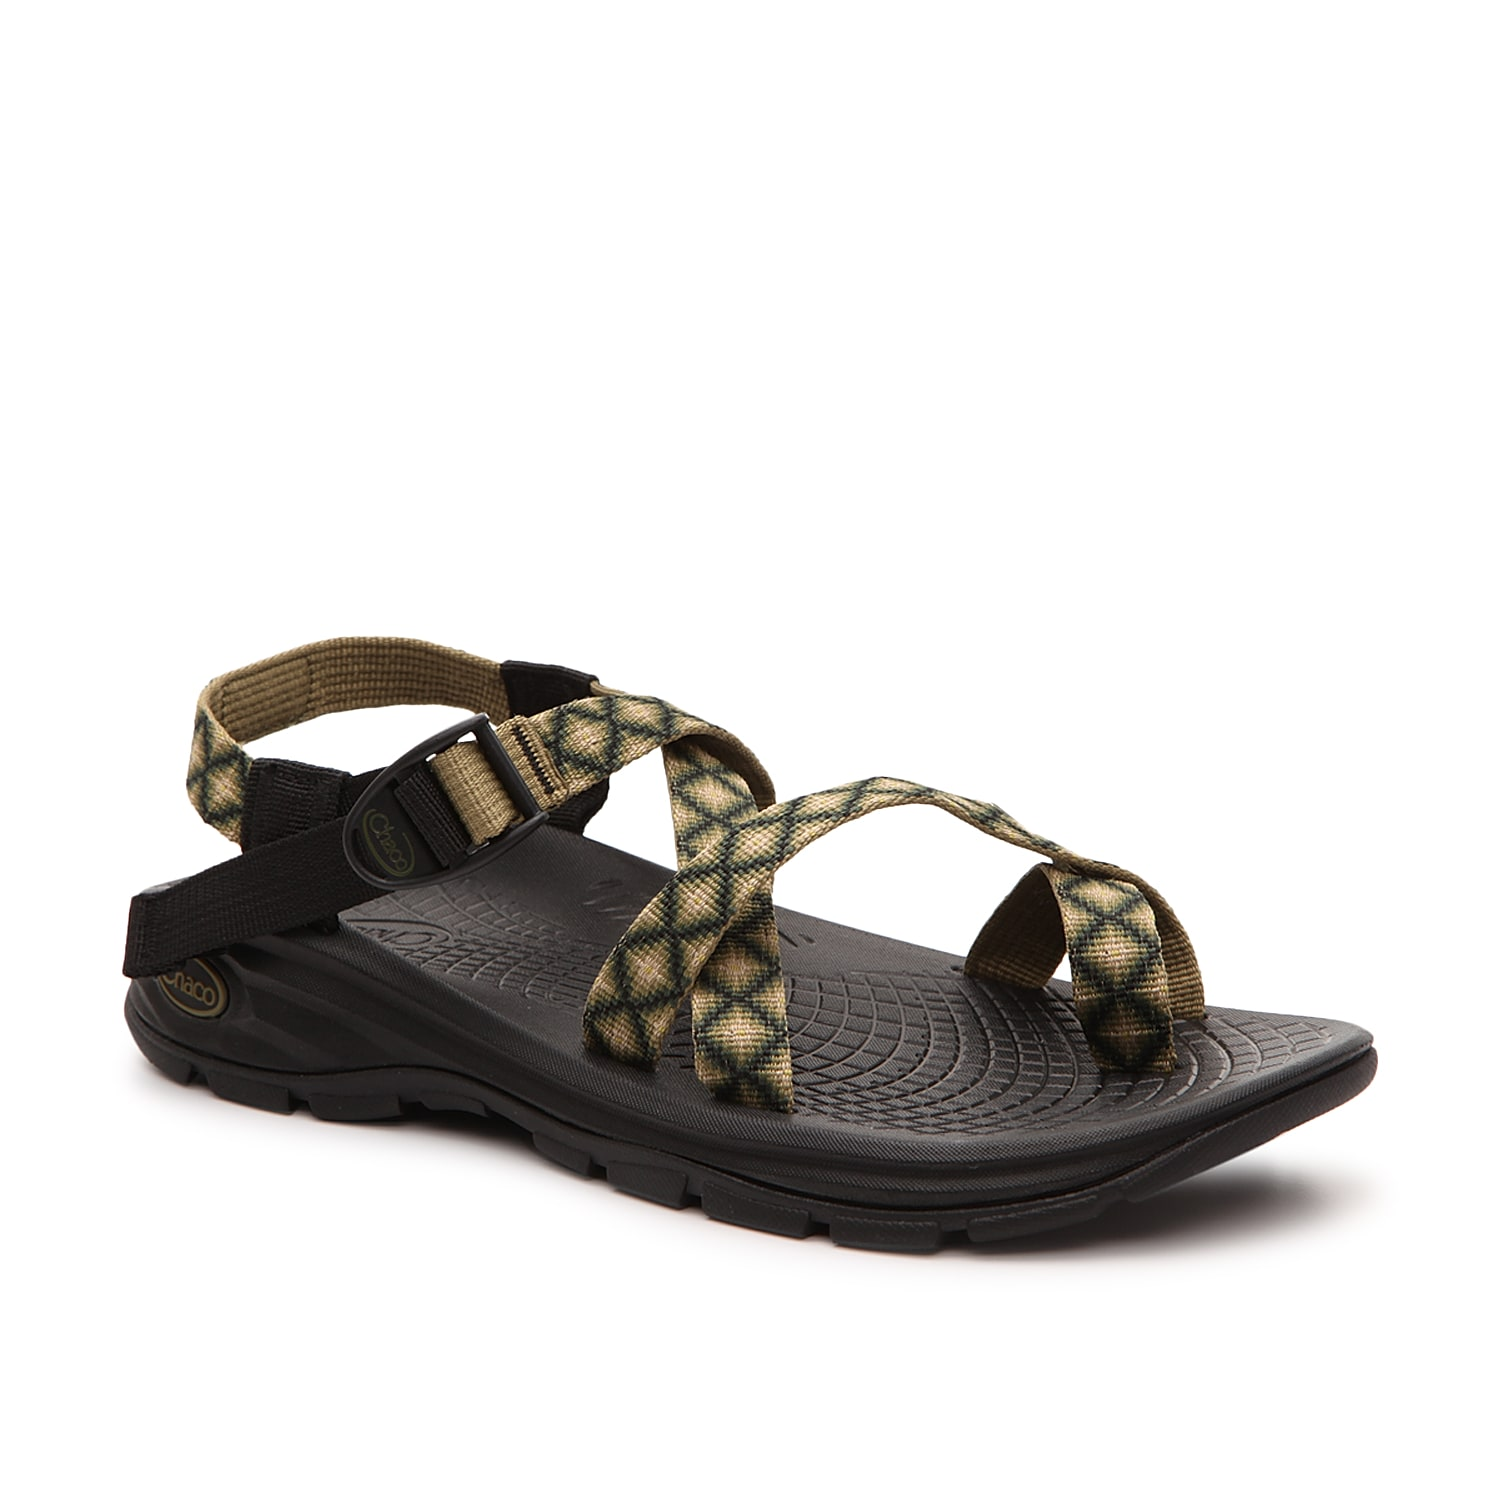 Fulfill your adventurous days with comfort when wearing the Zvolv sandal from Chaco. This casual pair features a modern design and an ECO Tread® rubber sole for all the traction and durability you\\\'ll need in a pair of shoes!